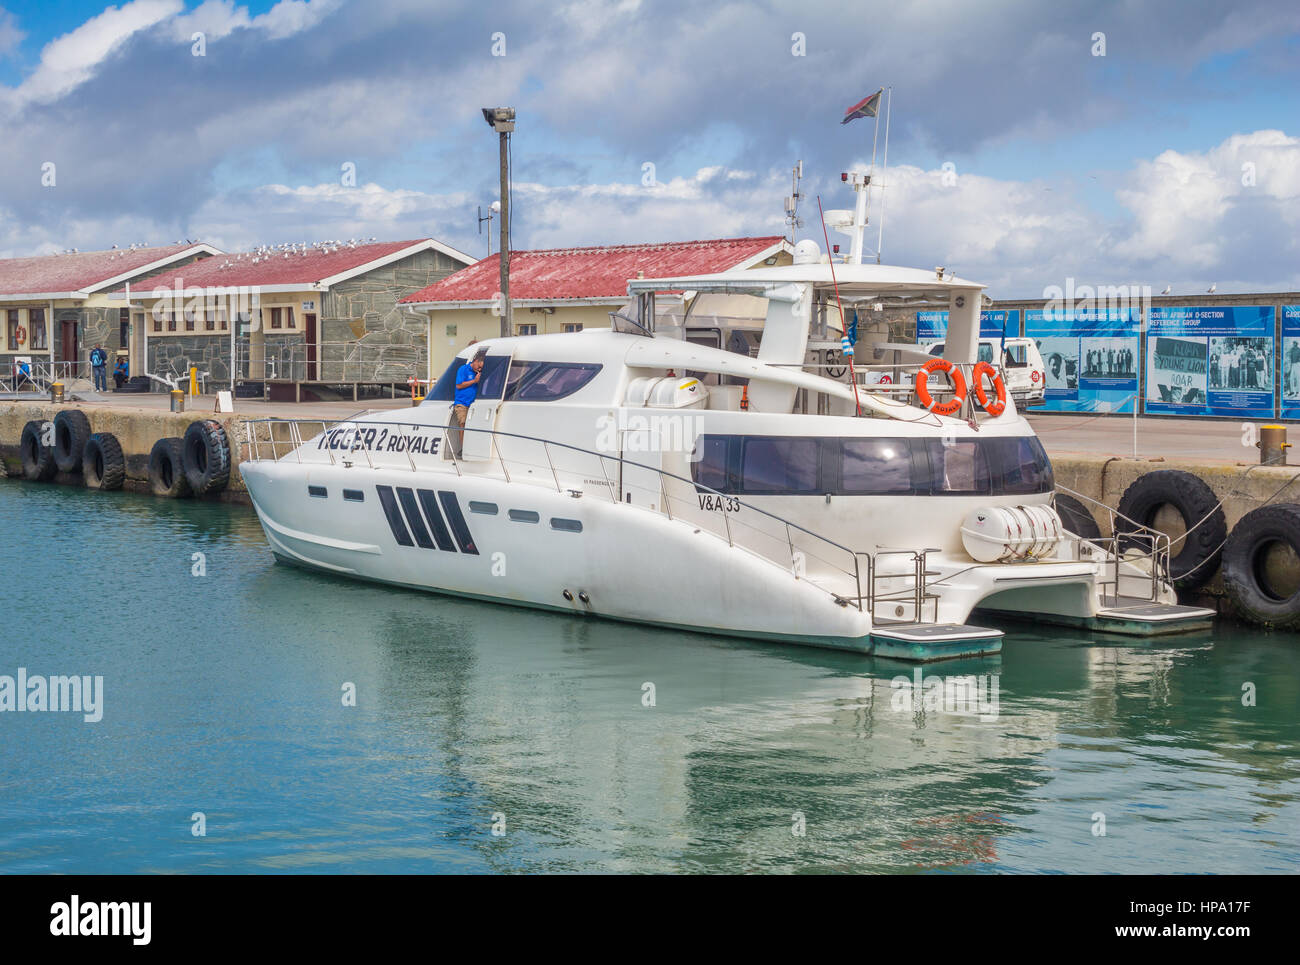 ROBBEN ISLAND, SOUTH AFRICA - DECEMBER 19, 2016: Photo of luxury 55 foot power cat berthed at dock at Robben Island - Stock Image